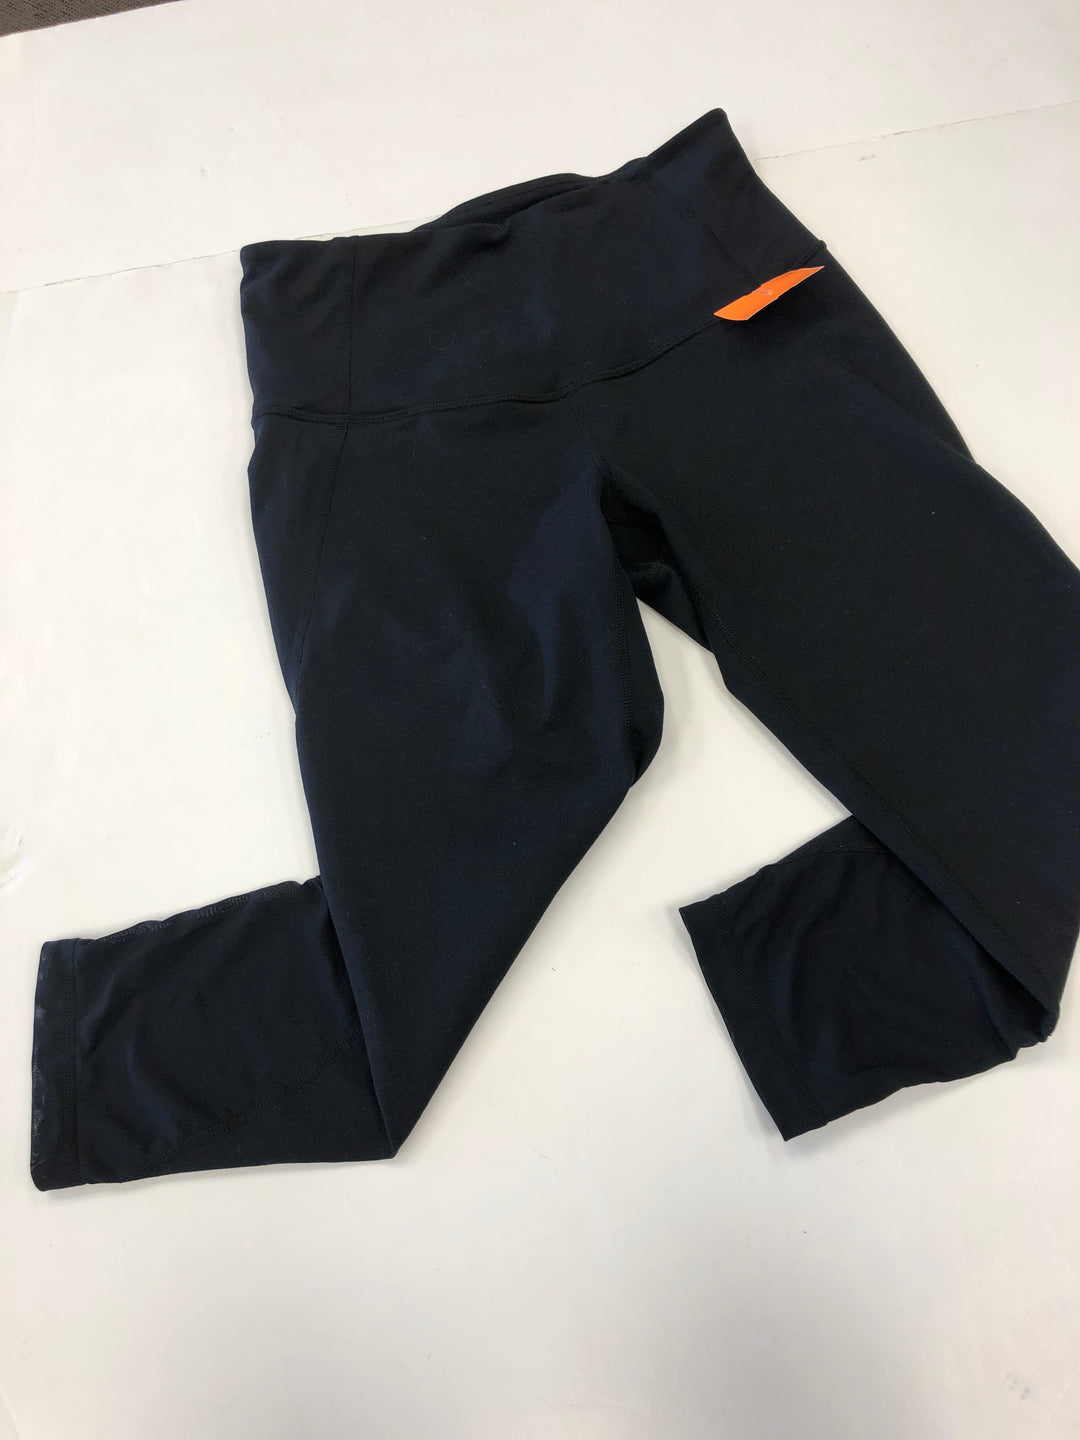 Primary Photo - BRAND: ZELLA <BR>STYLE: ATHLETIC CAPRIS <BR>COLOR: BLACK <BR>SIZE: M <BR>SKU: 198-19812-16507